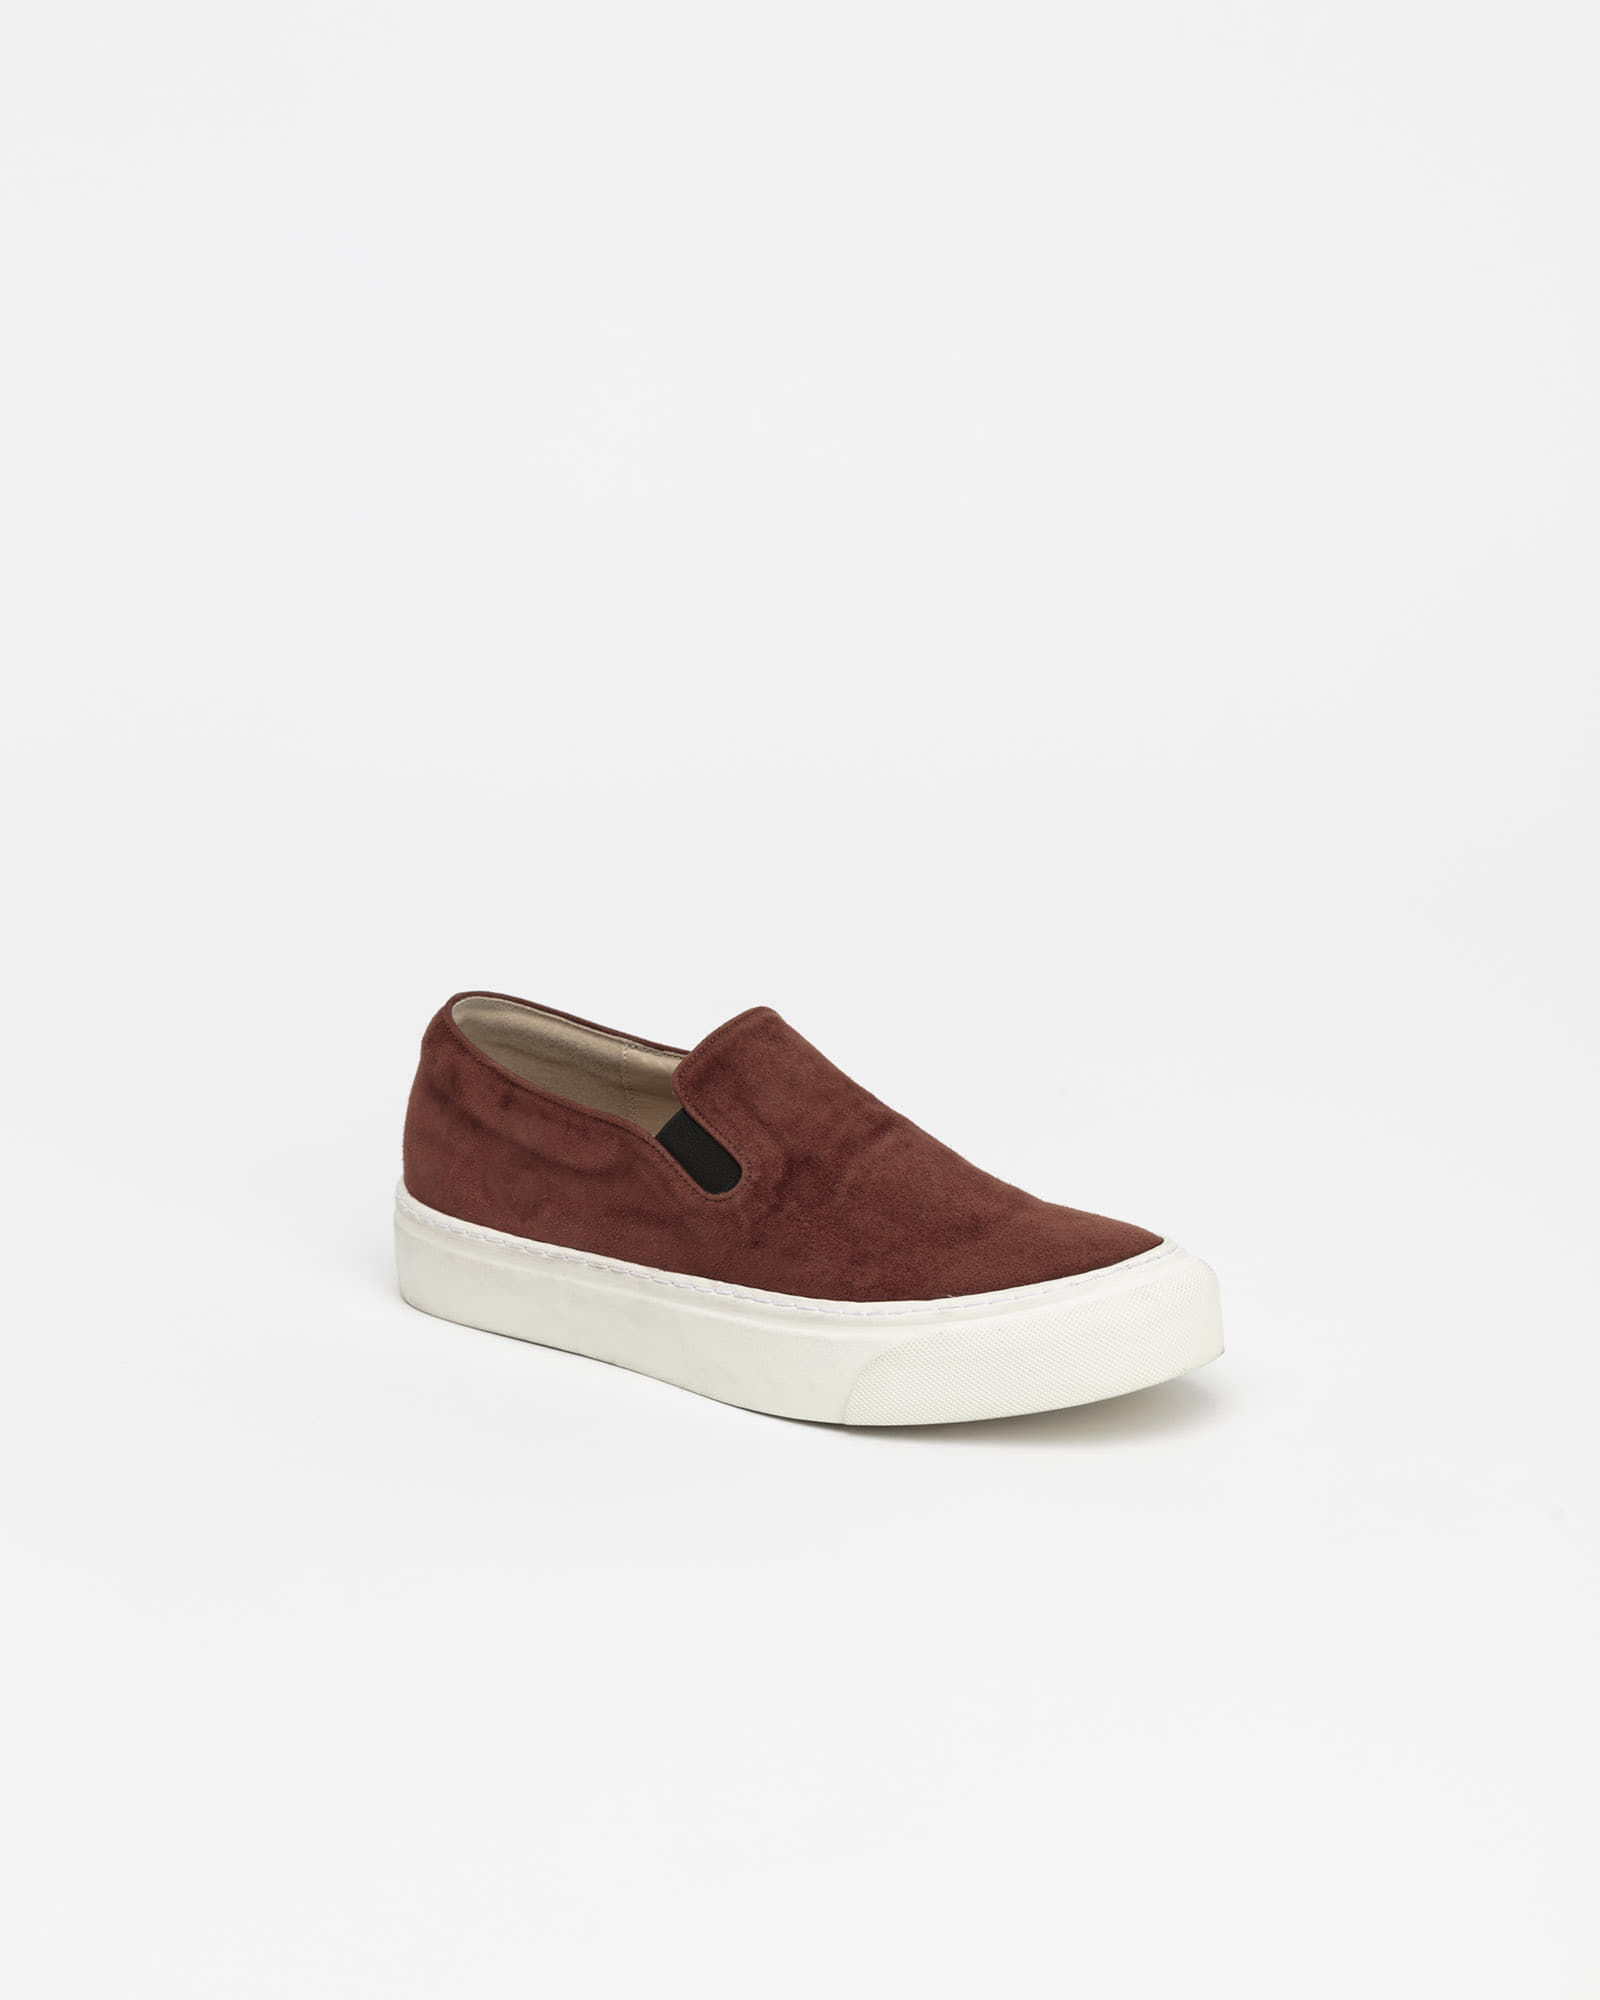 Palo Slip-on Sneakers in Chestnut Brown Suede